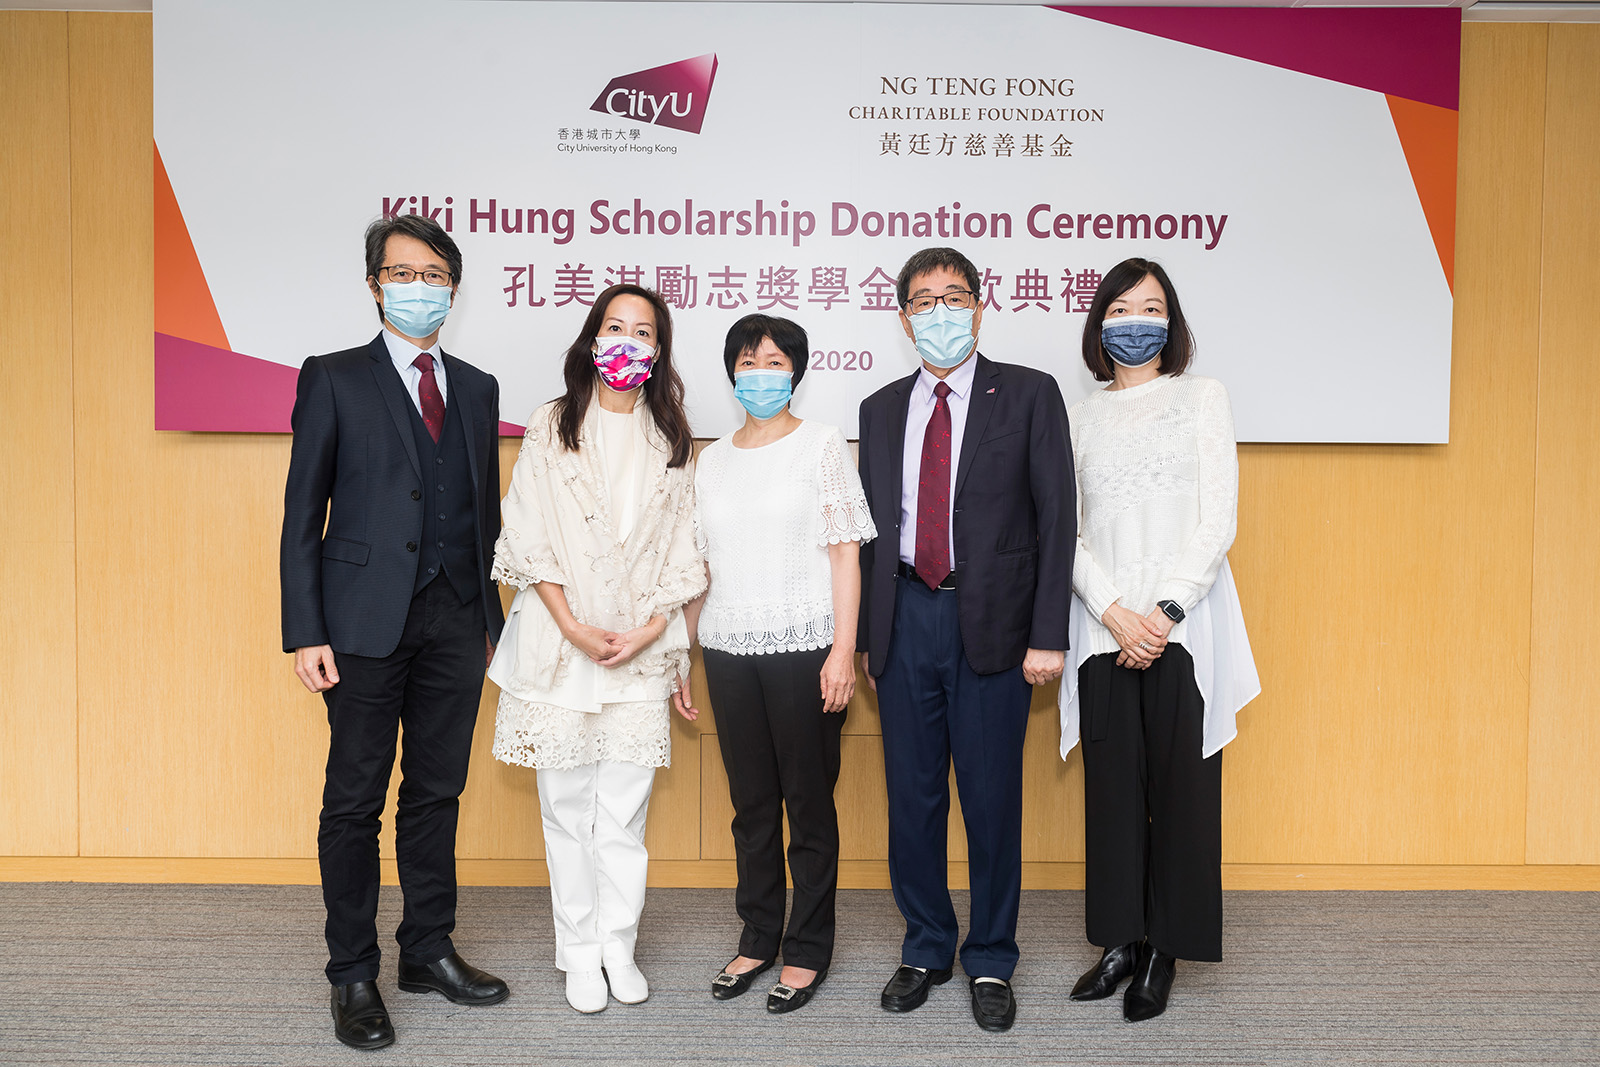 (From left) Professor Matthew Lee, Ms Nikki Ng, Ms Yang, President Kuo and Ms Kathy Chan.